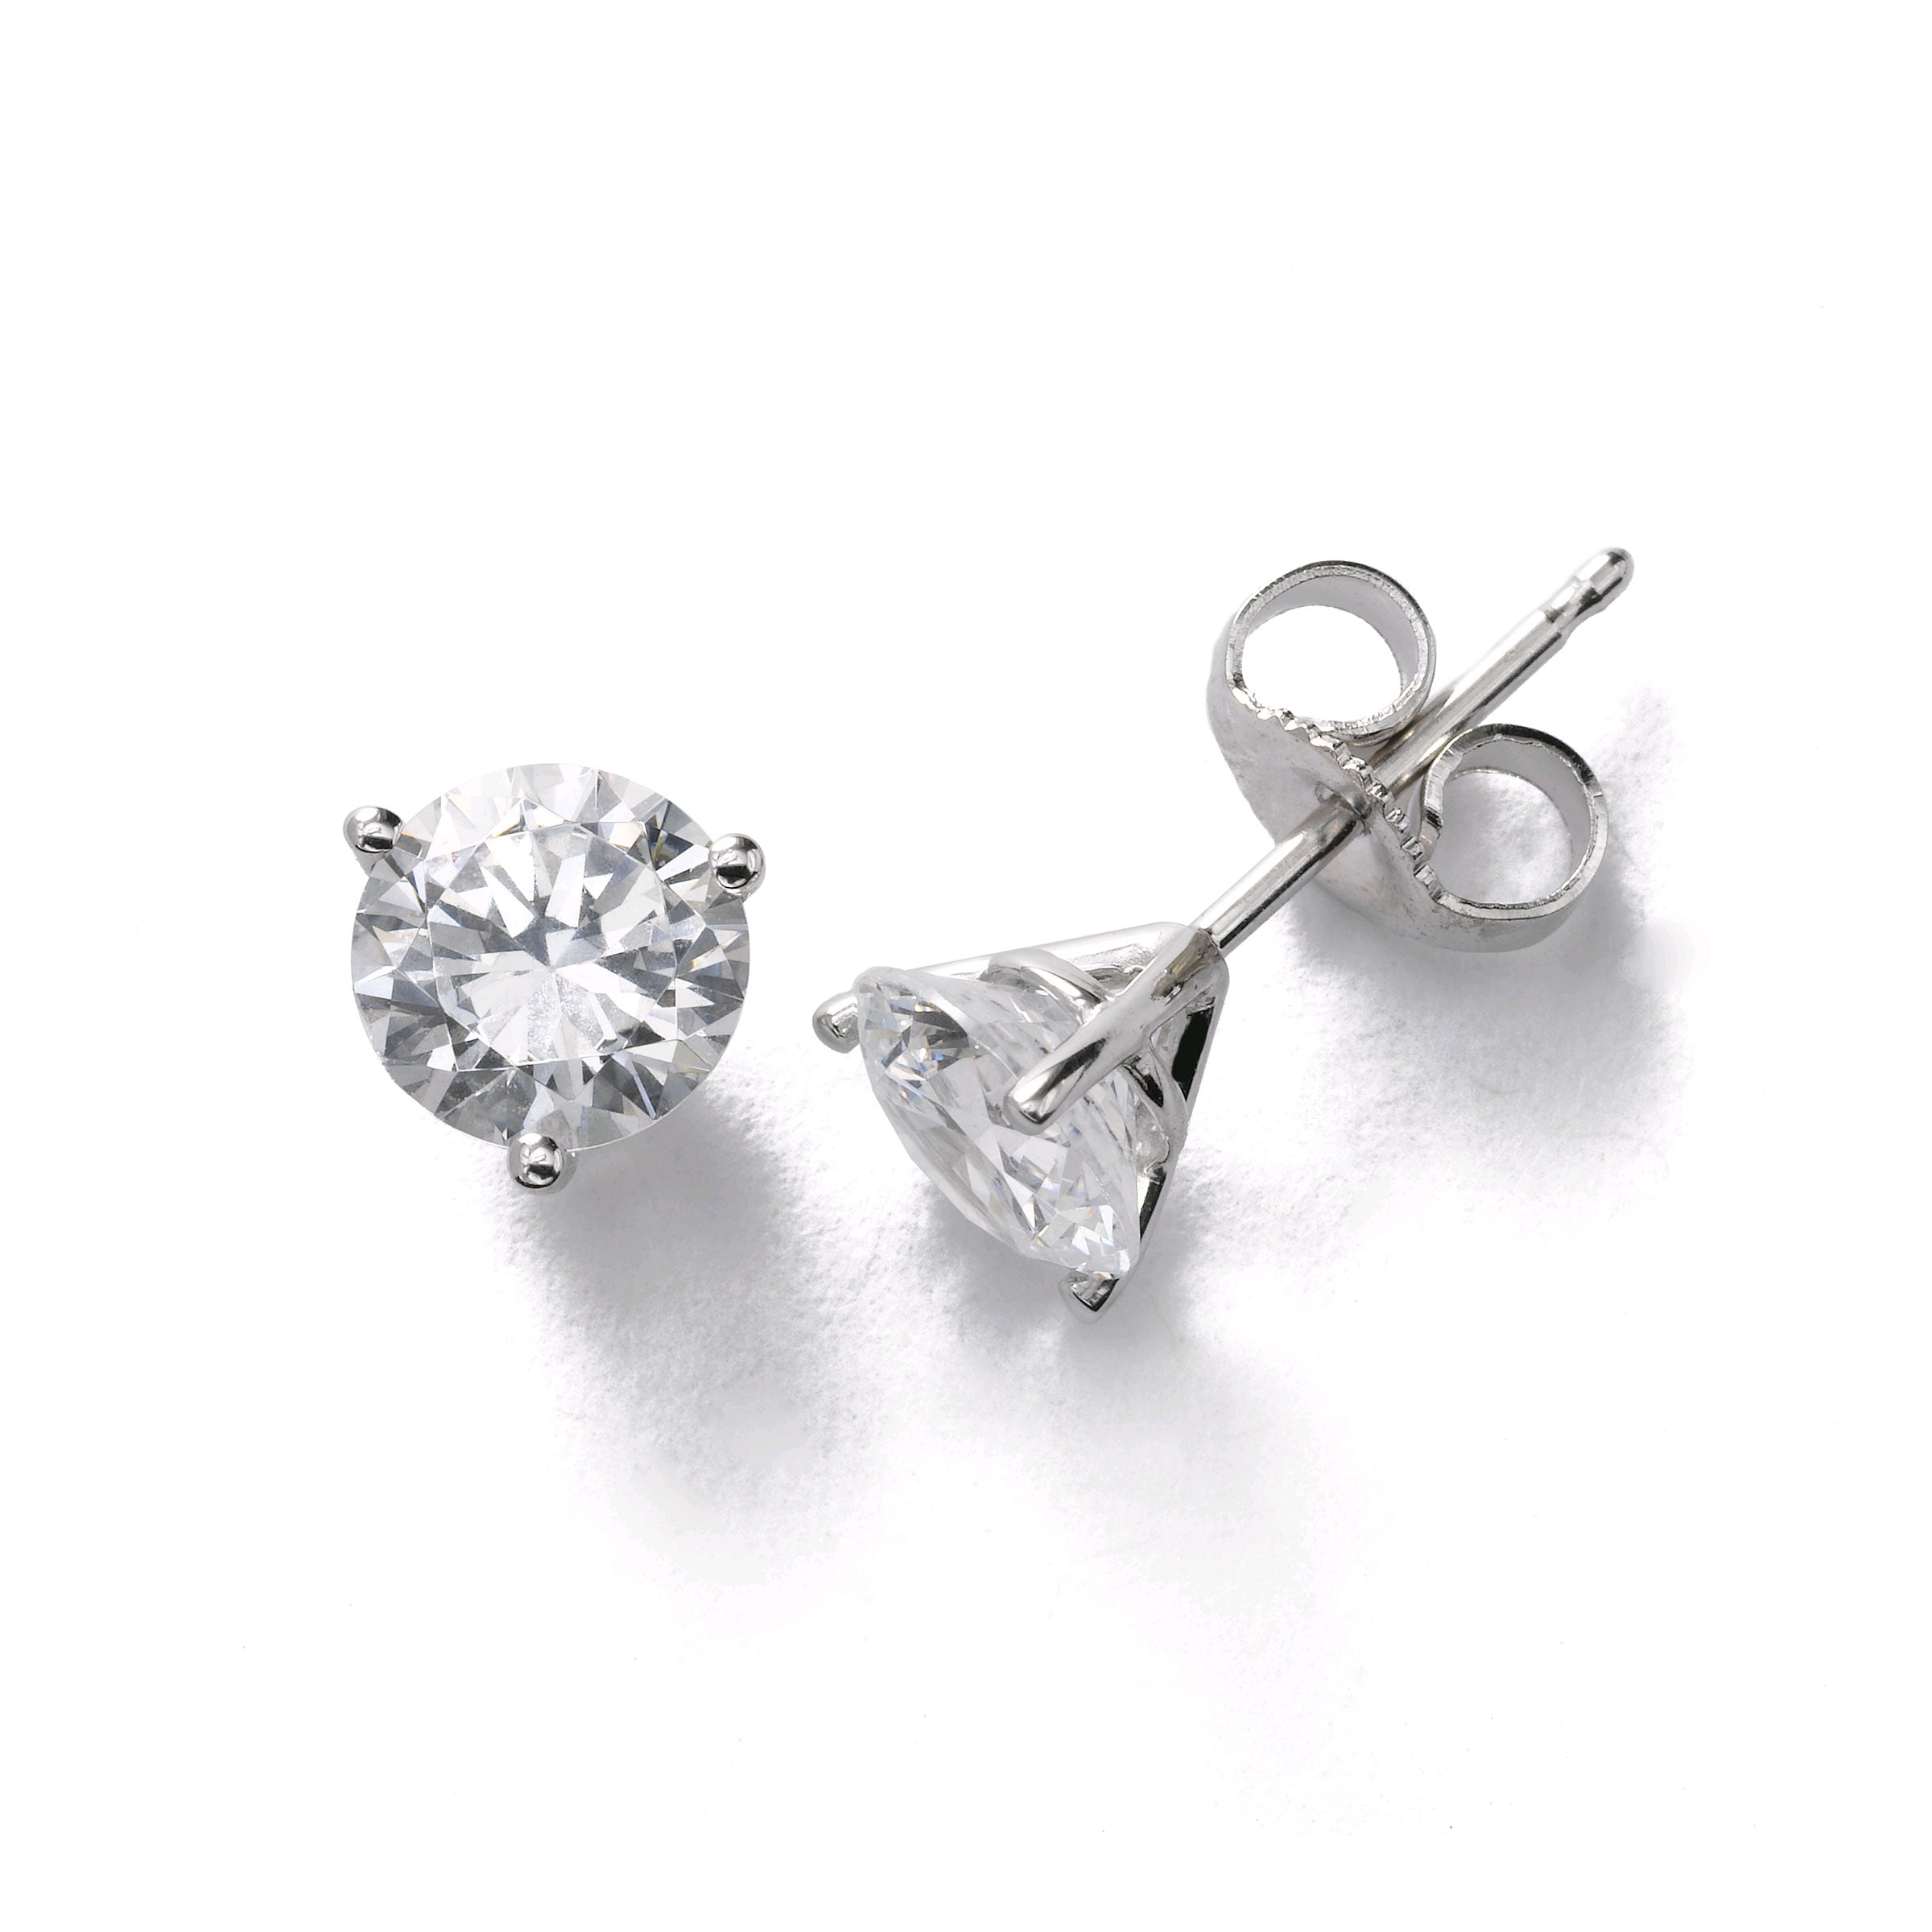 Three Prong Diamond Stud Earrings, 2.13 Carats Total, I-VS2, 18K White Gold